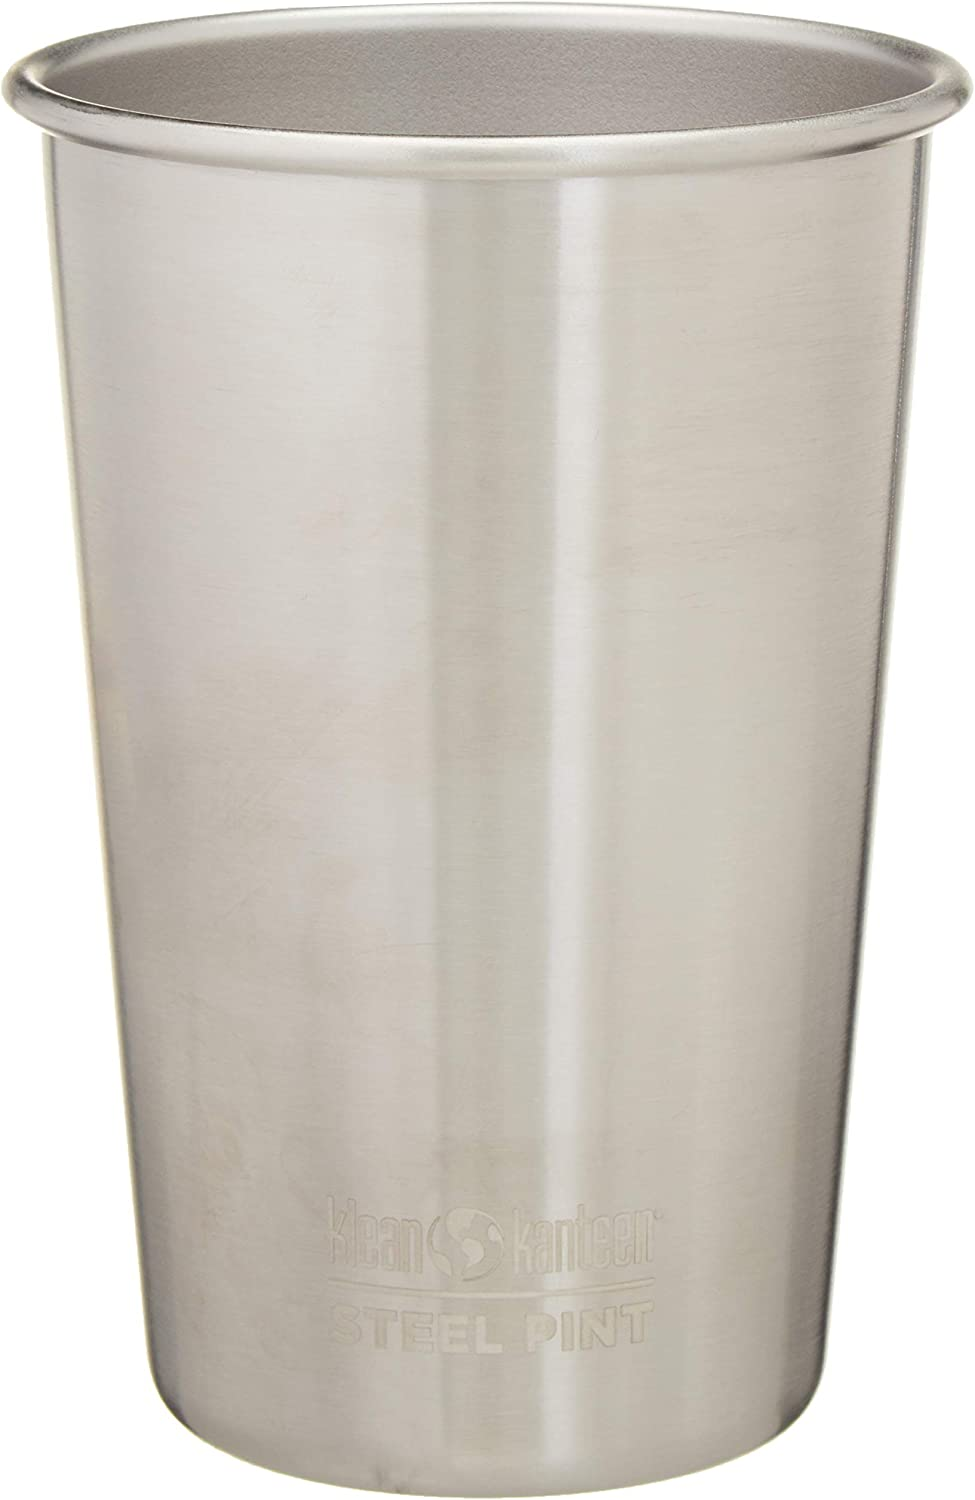 Klean Kanteen Single Wall Stainless Steel Cups, Pint Glasses in 10oz/16oz/20oz